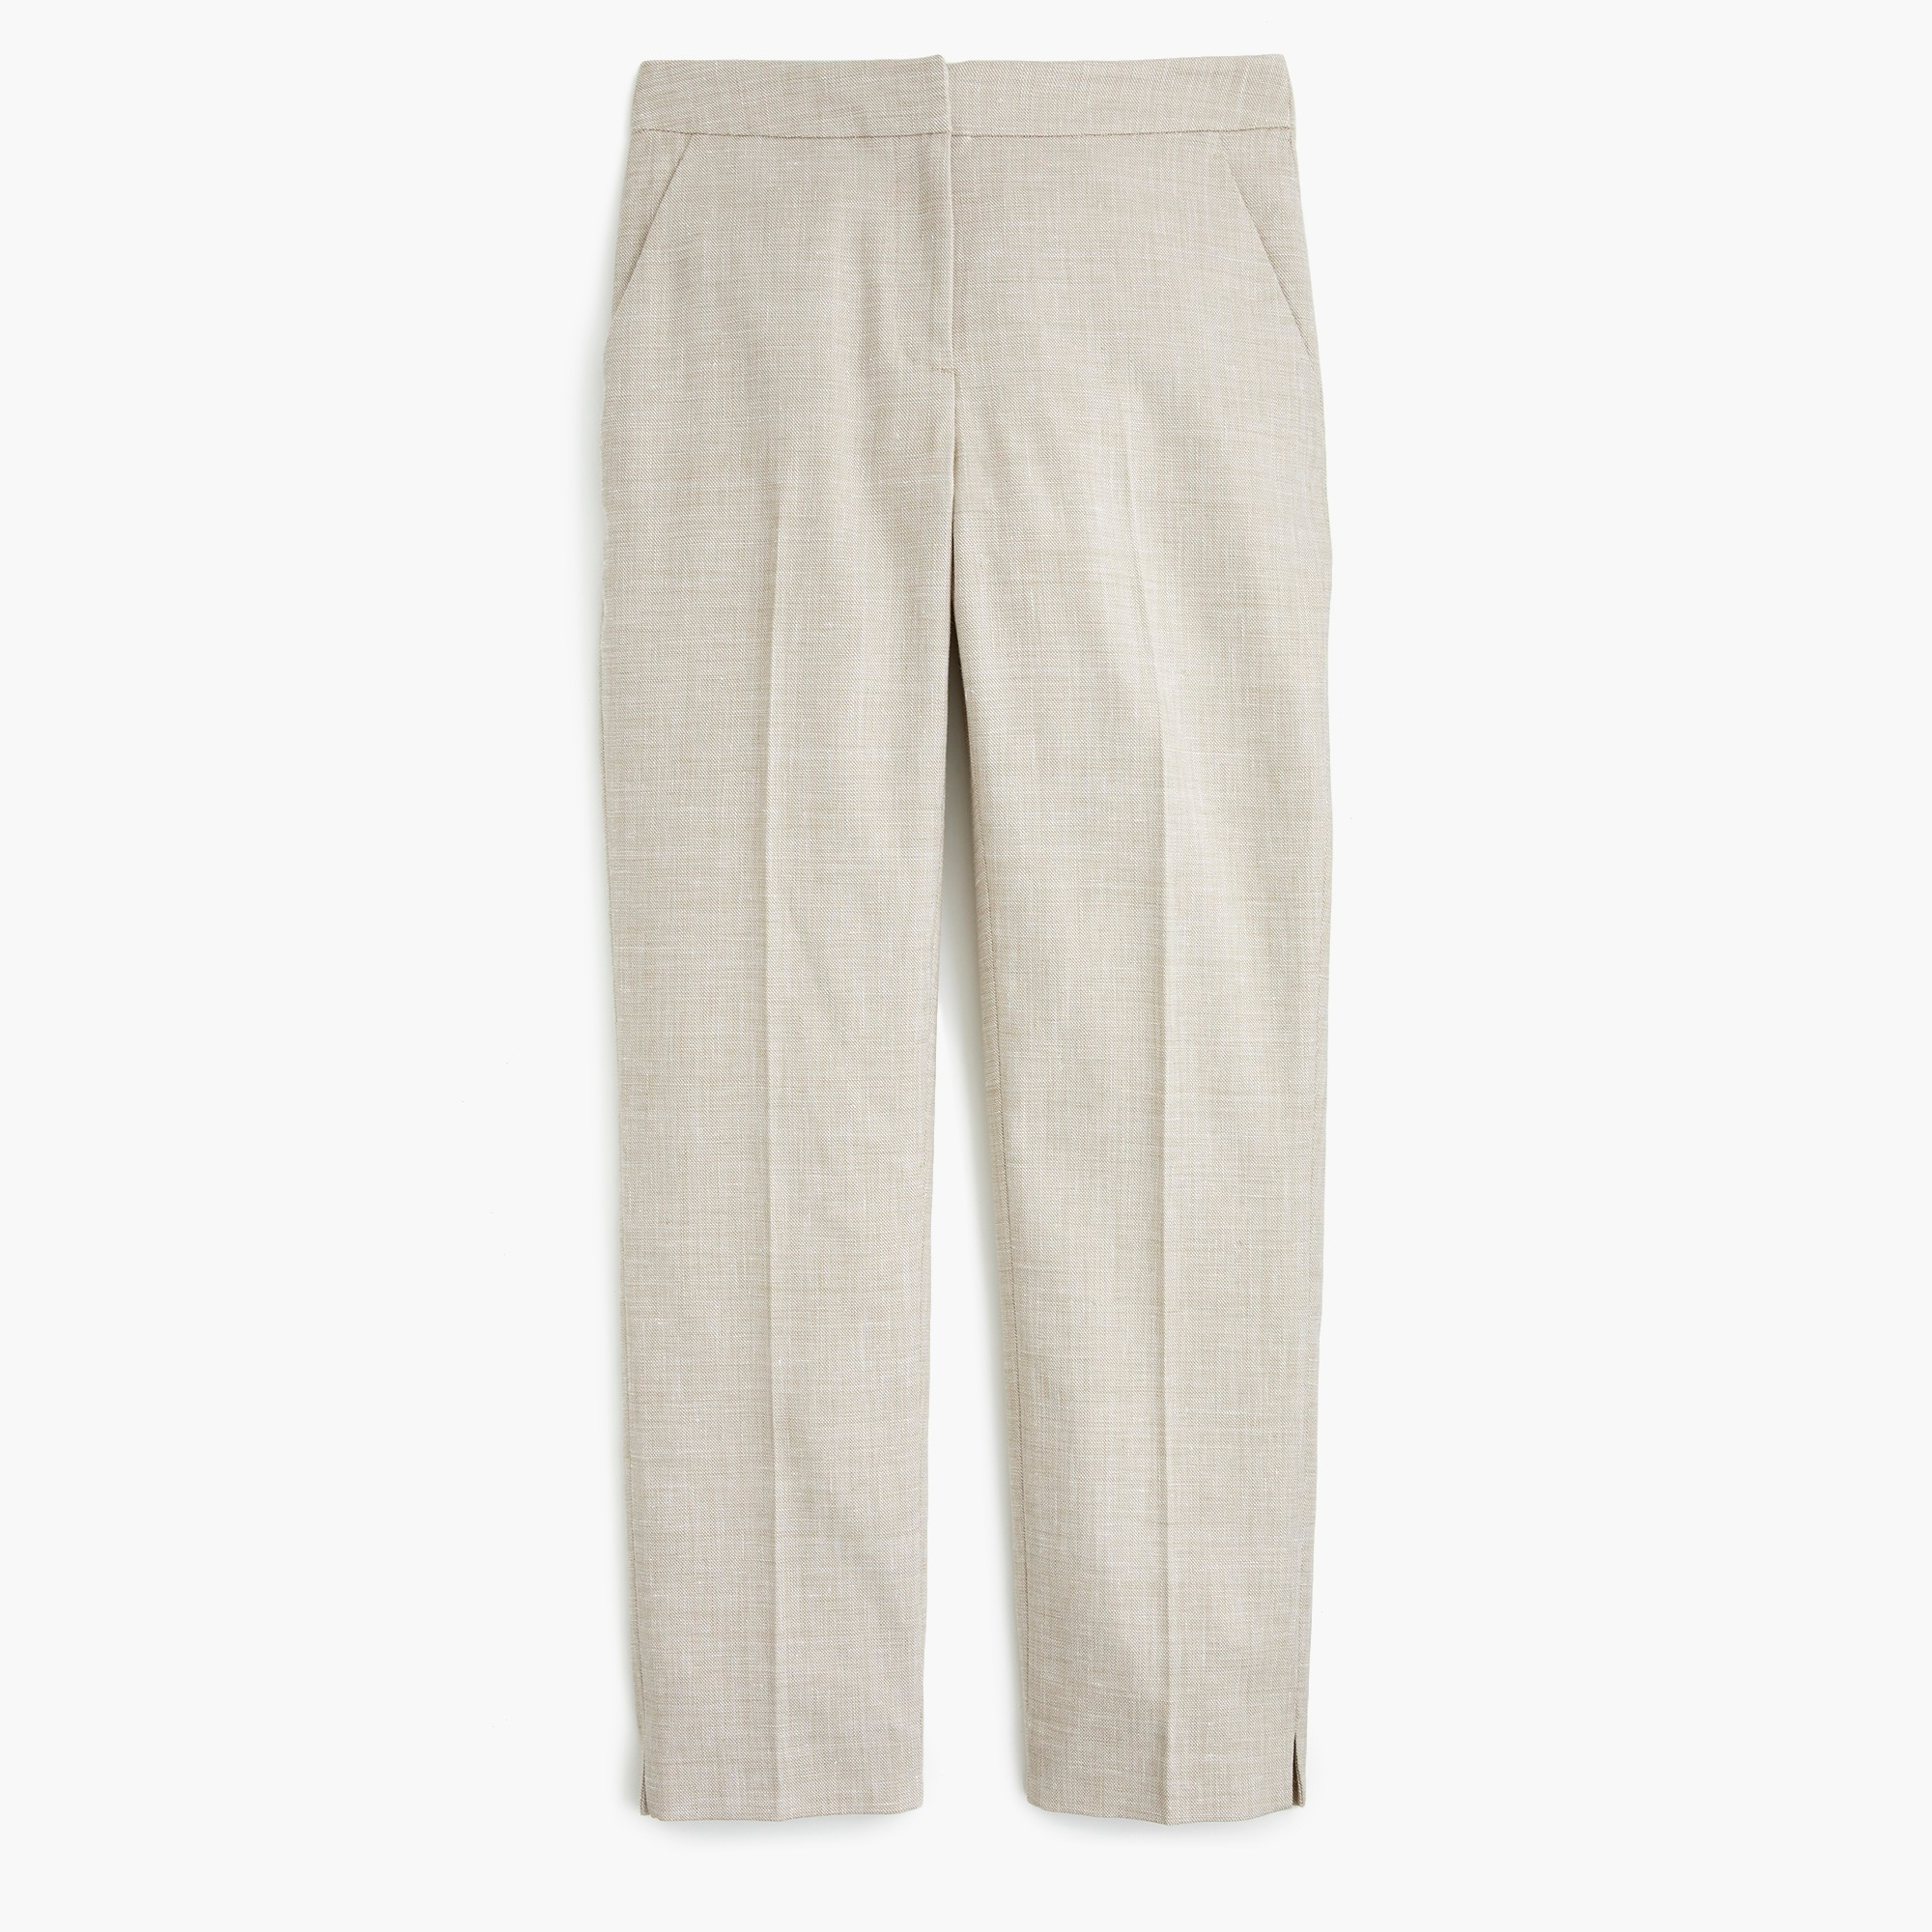 Petite easy pant stretch linen